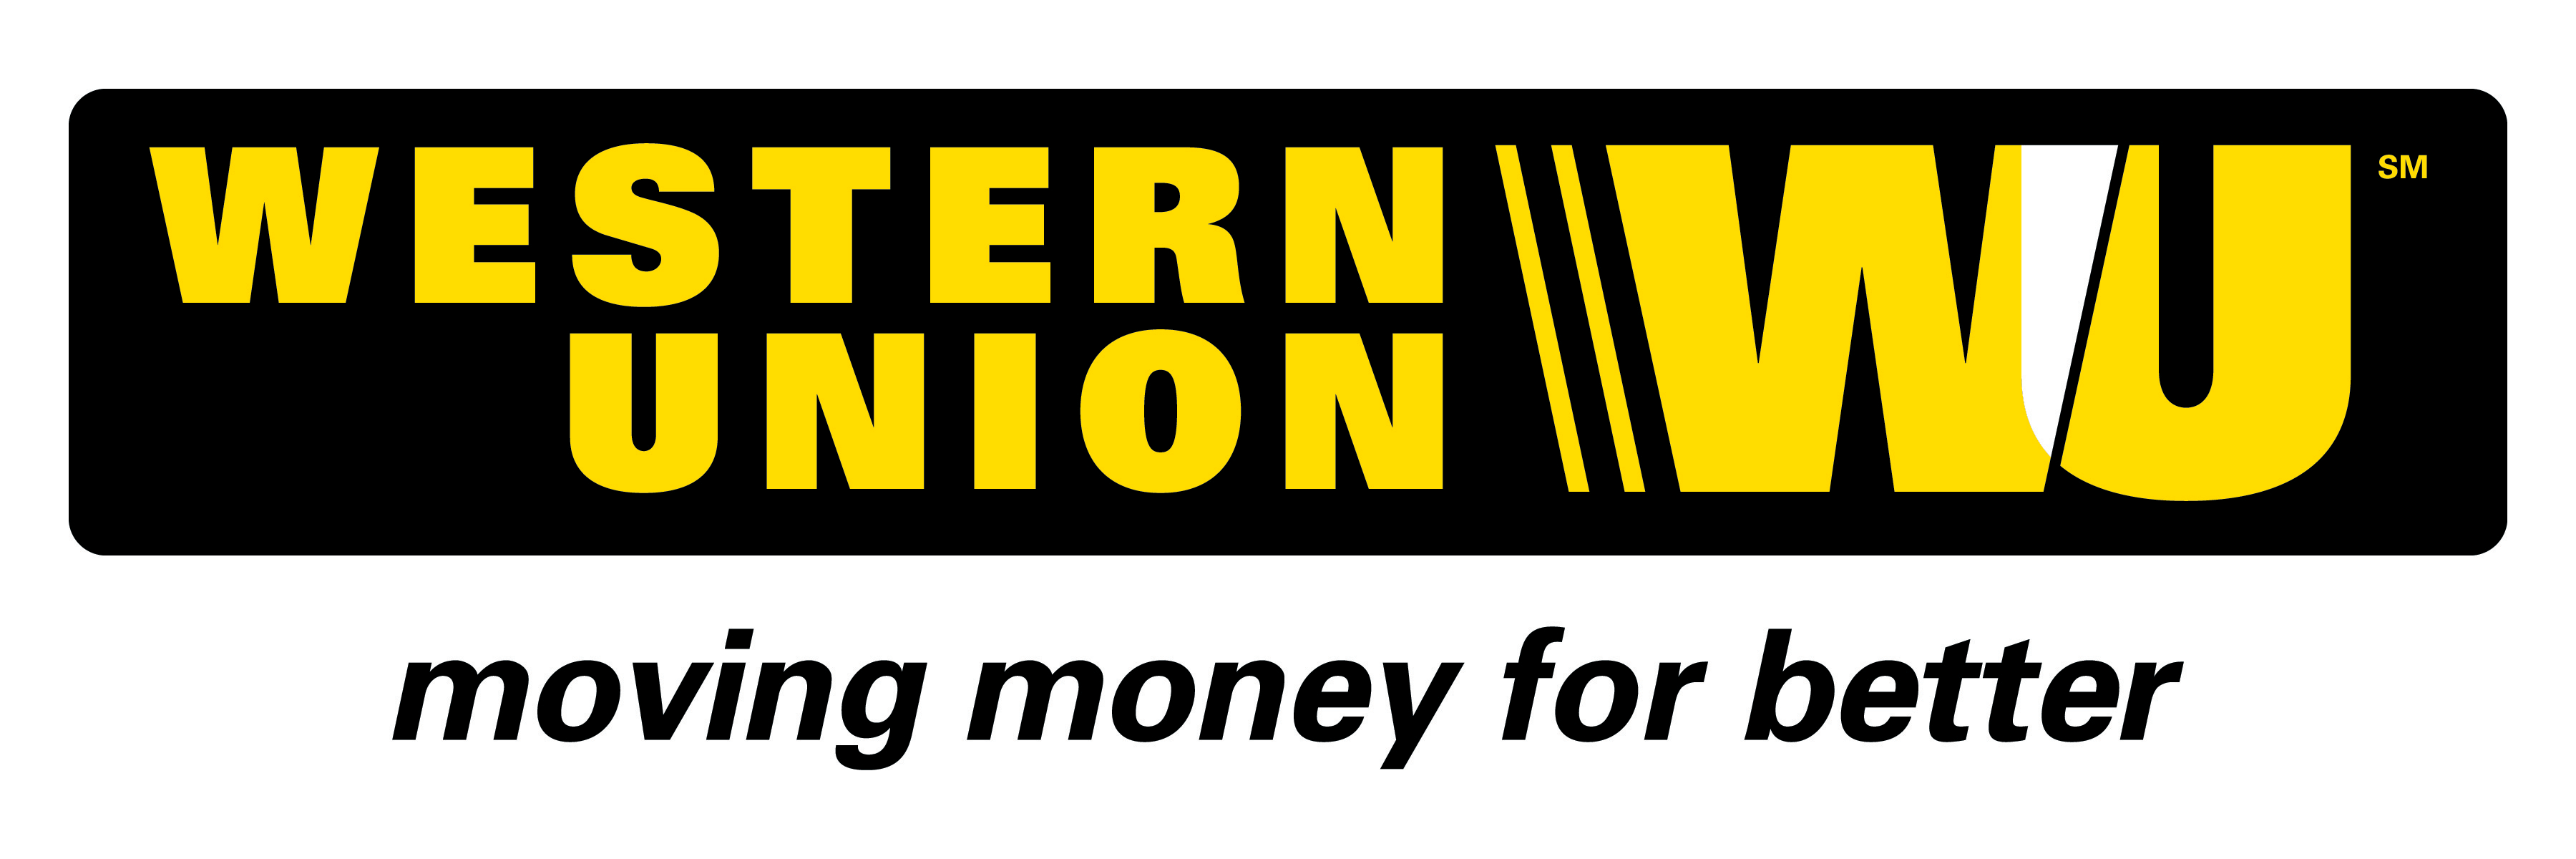 Contact person for any western union reliable quires. Name: Ahmad Samim  Meherzad Mobile:  93 (0) 792990061. Email: wu@bakhtarbank.af